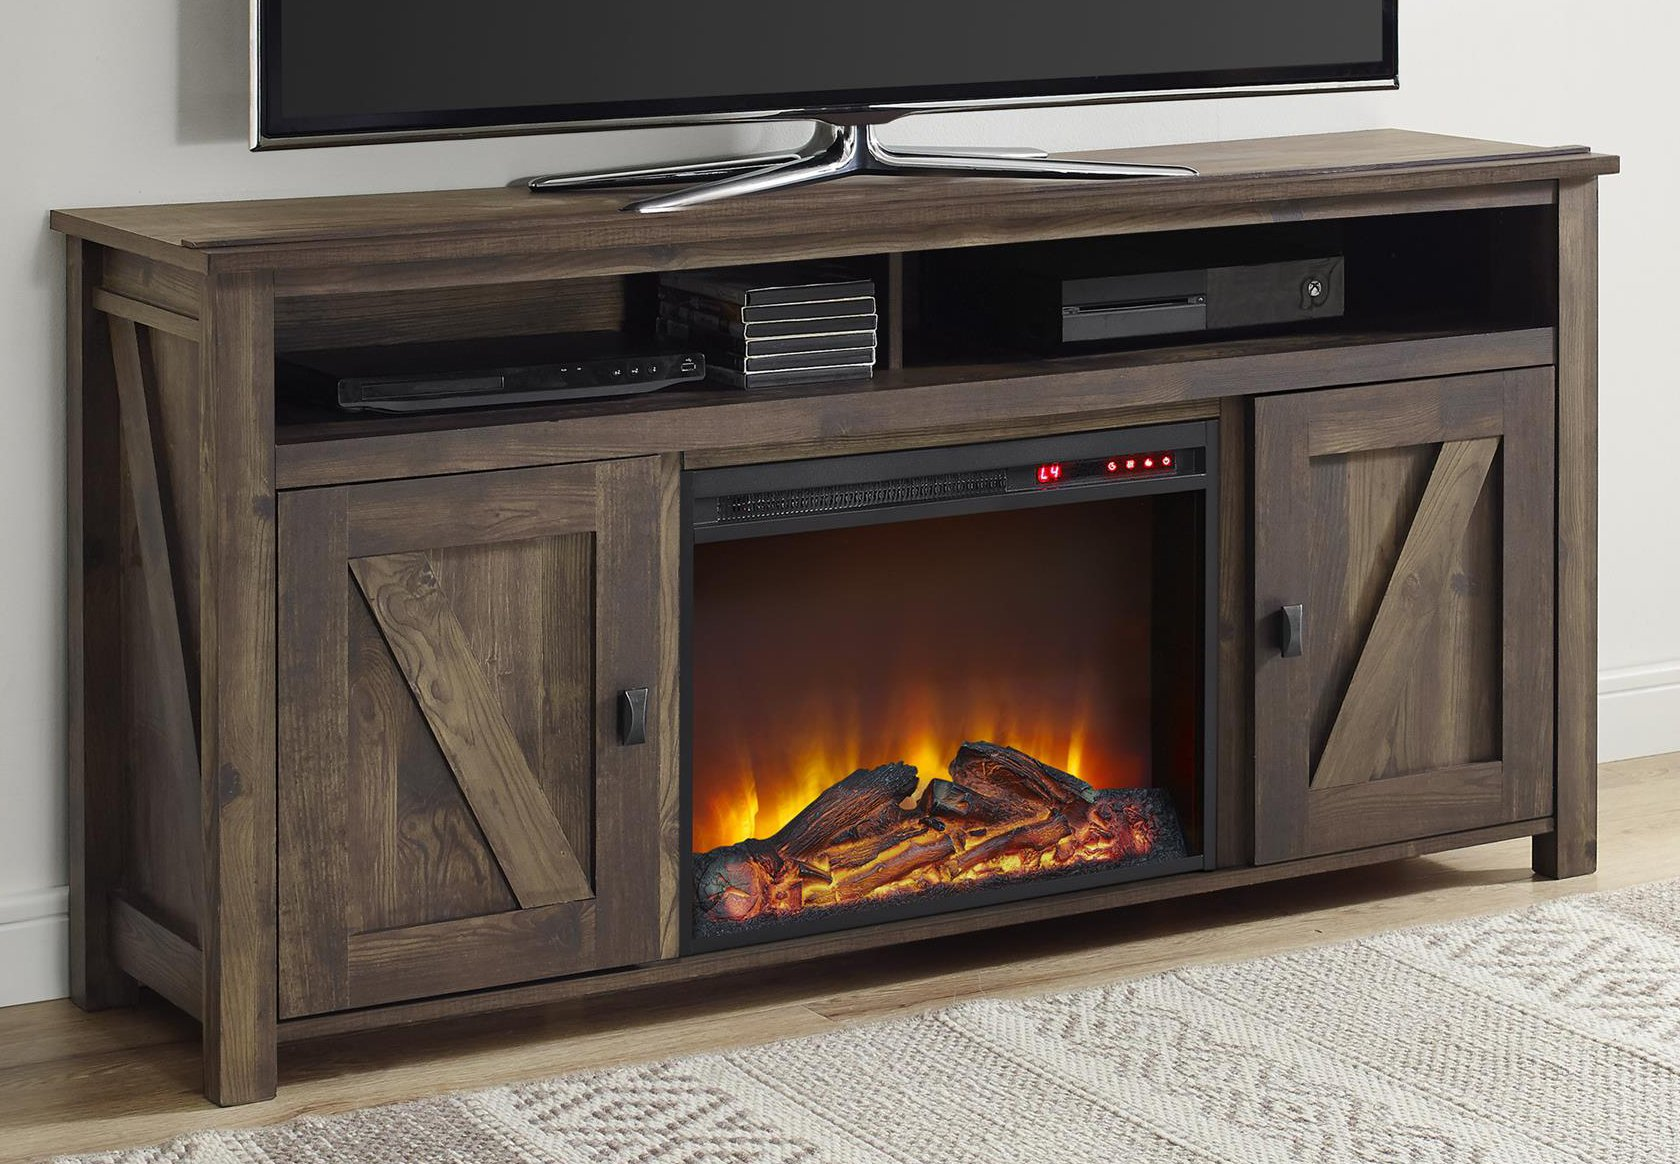 Ameriwood Home Farmington Electric Fireplace TV Console for TVs up to 60'', Rustic by Ameriwood Home